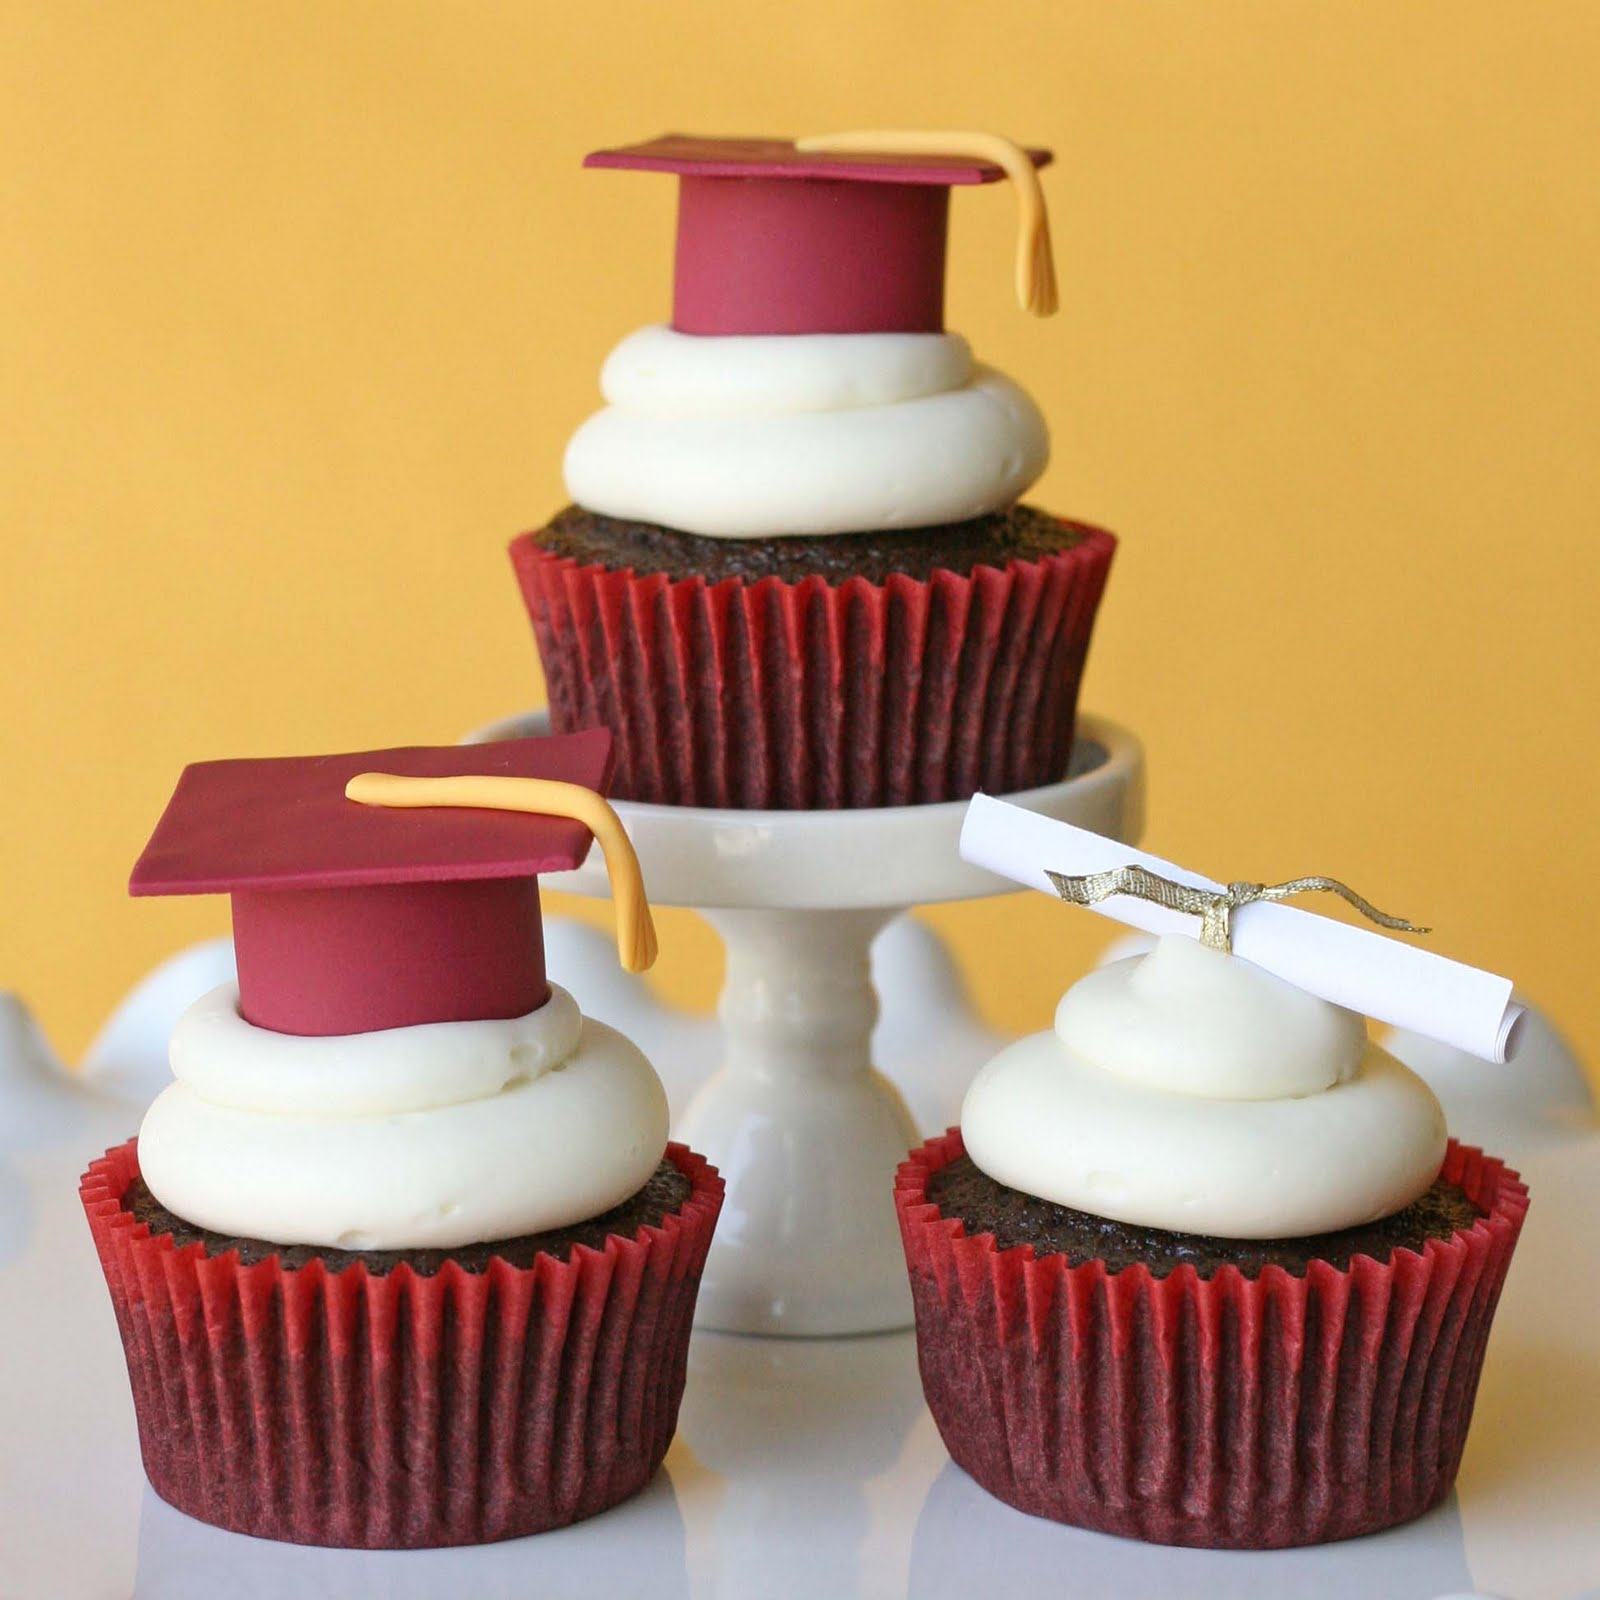 Graduation Cupcakes {and How To Make Fondant Graduation Caps}